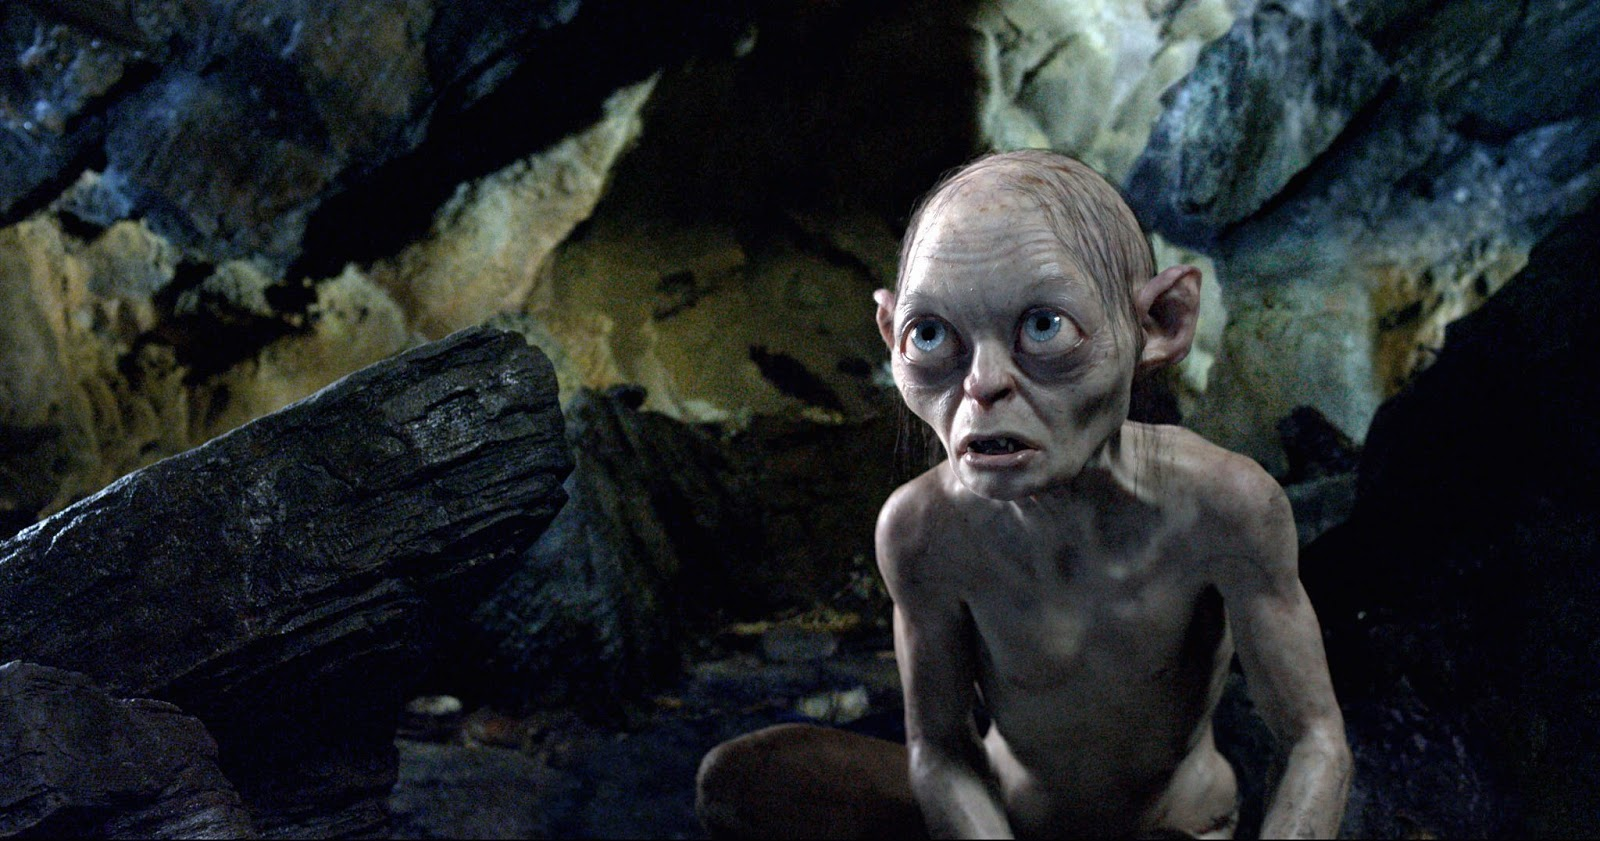 The Hobbit The Gollum And Ring